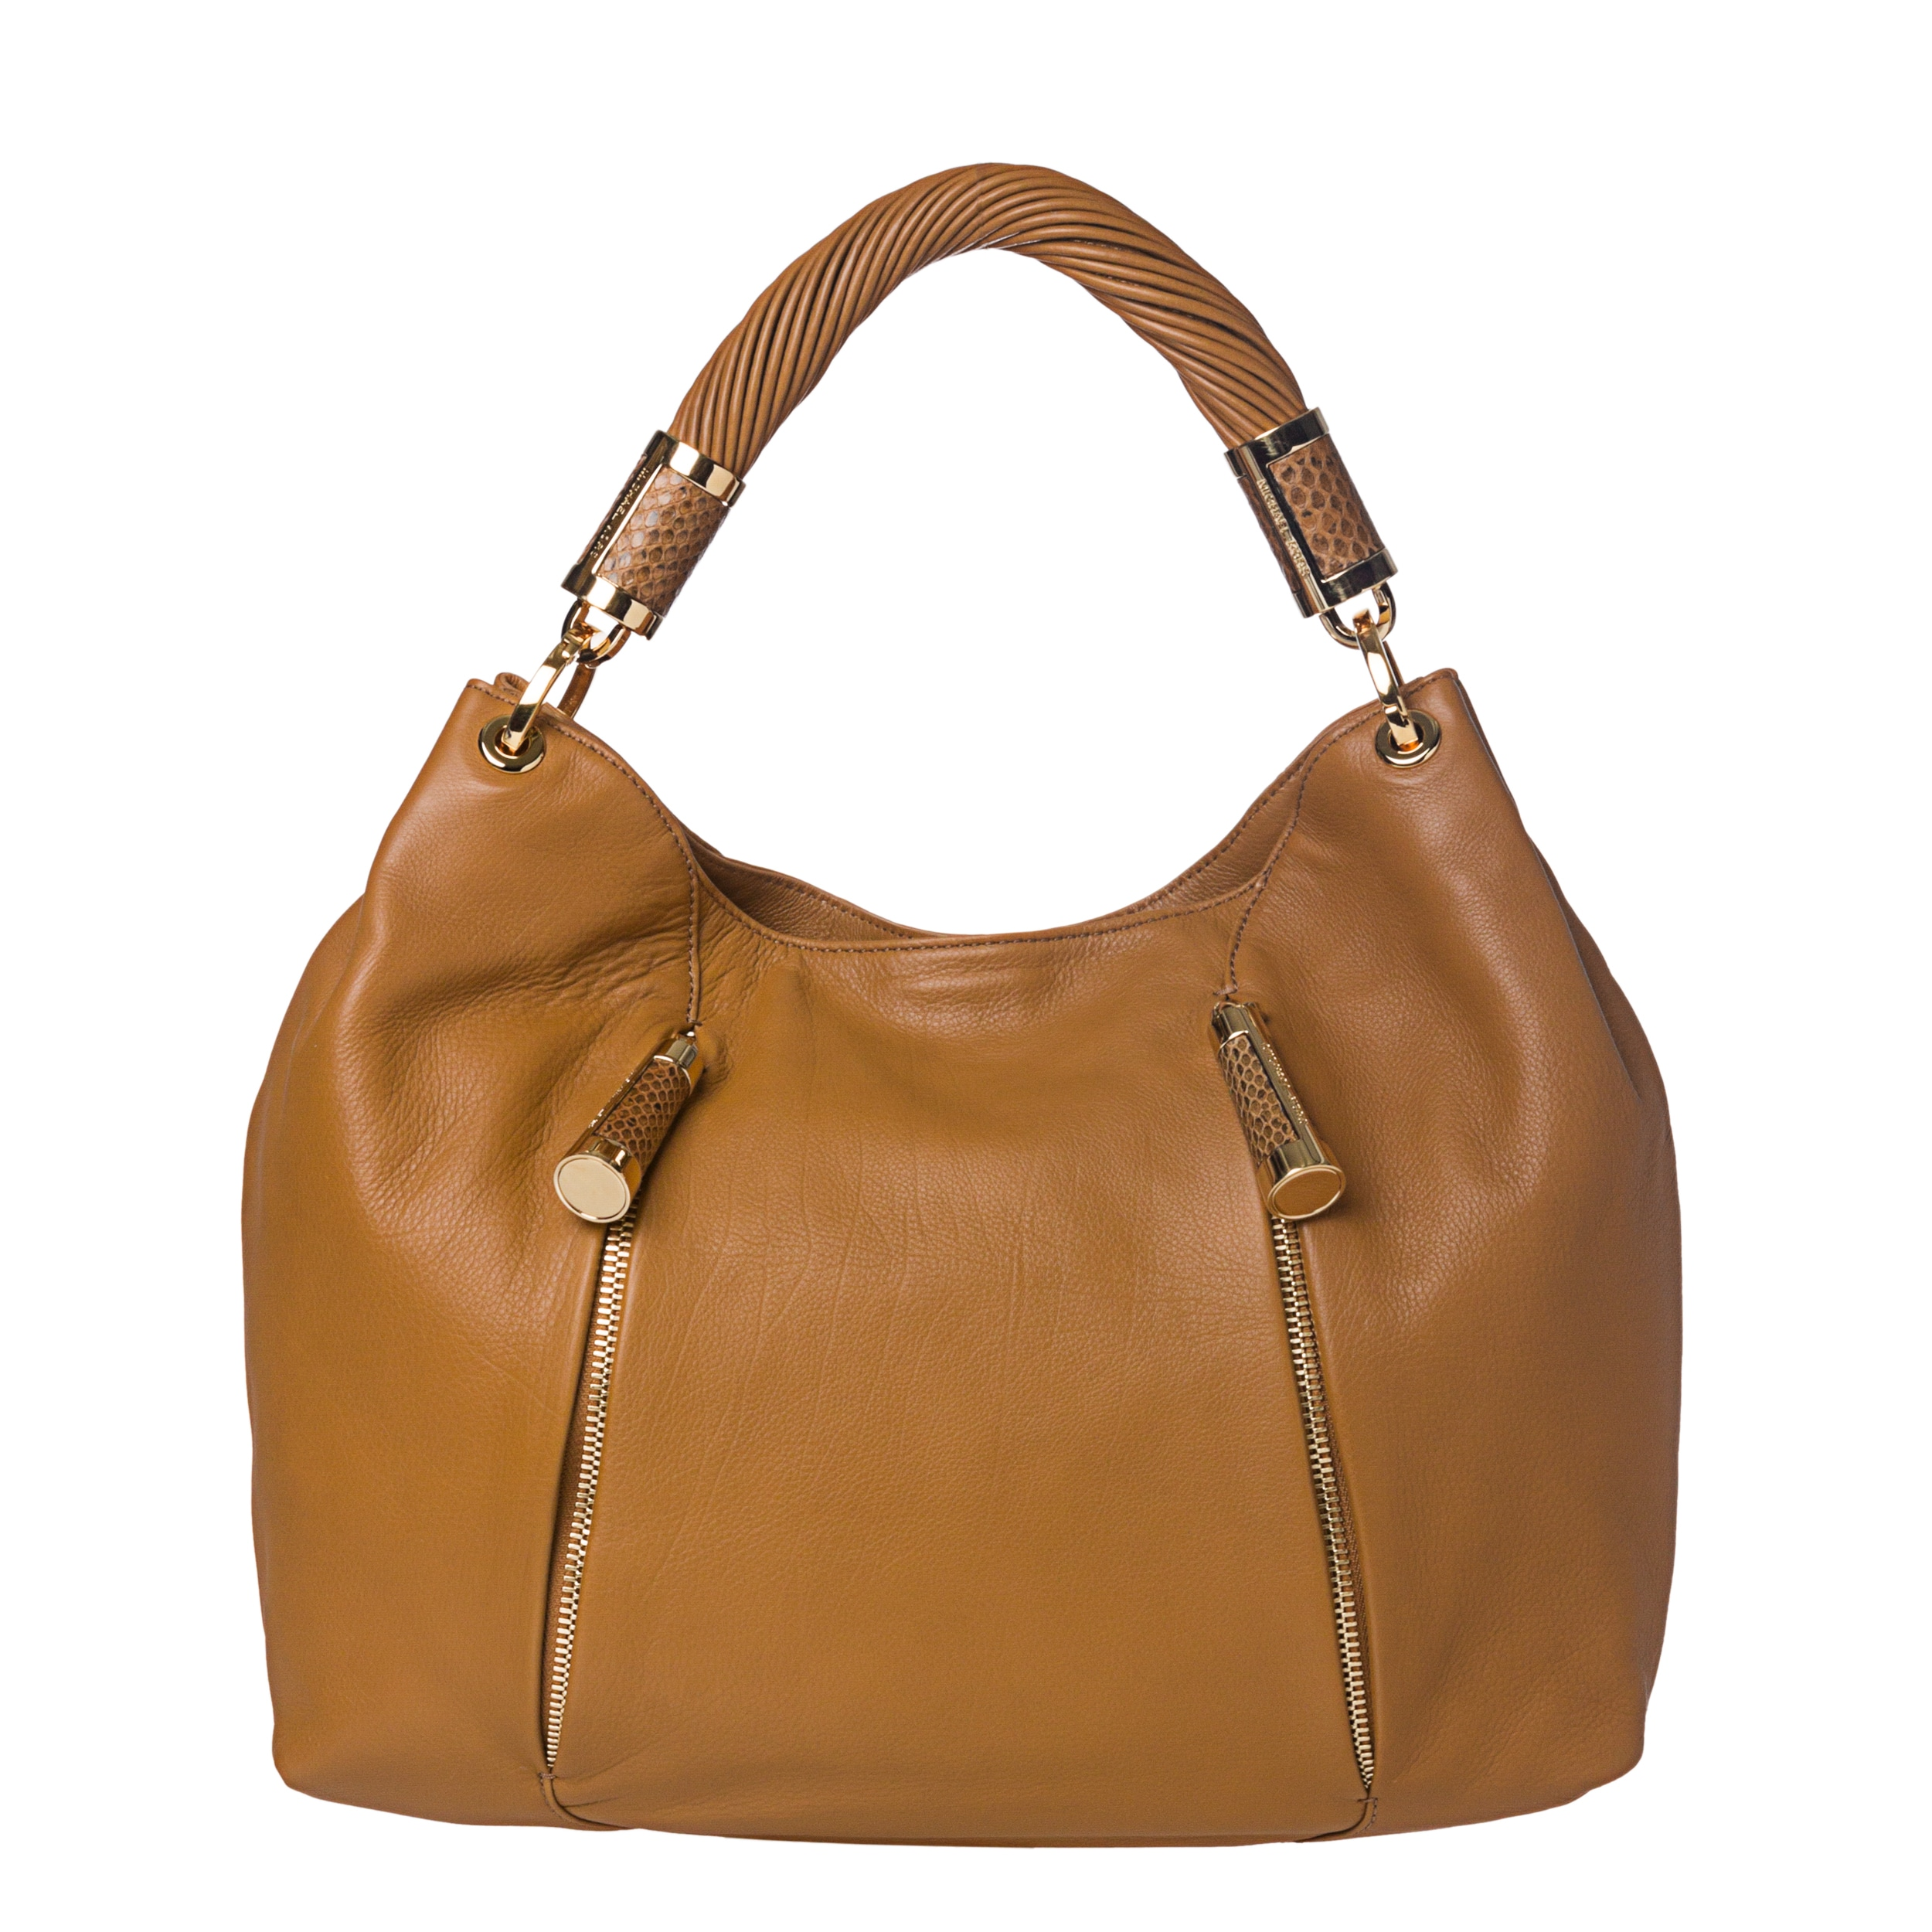 55102a74330c Michael Kors Tonne Tan Leather Hobo Bag on PopScreen